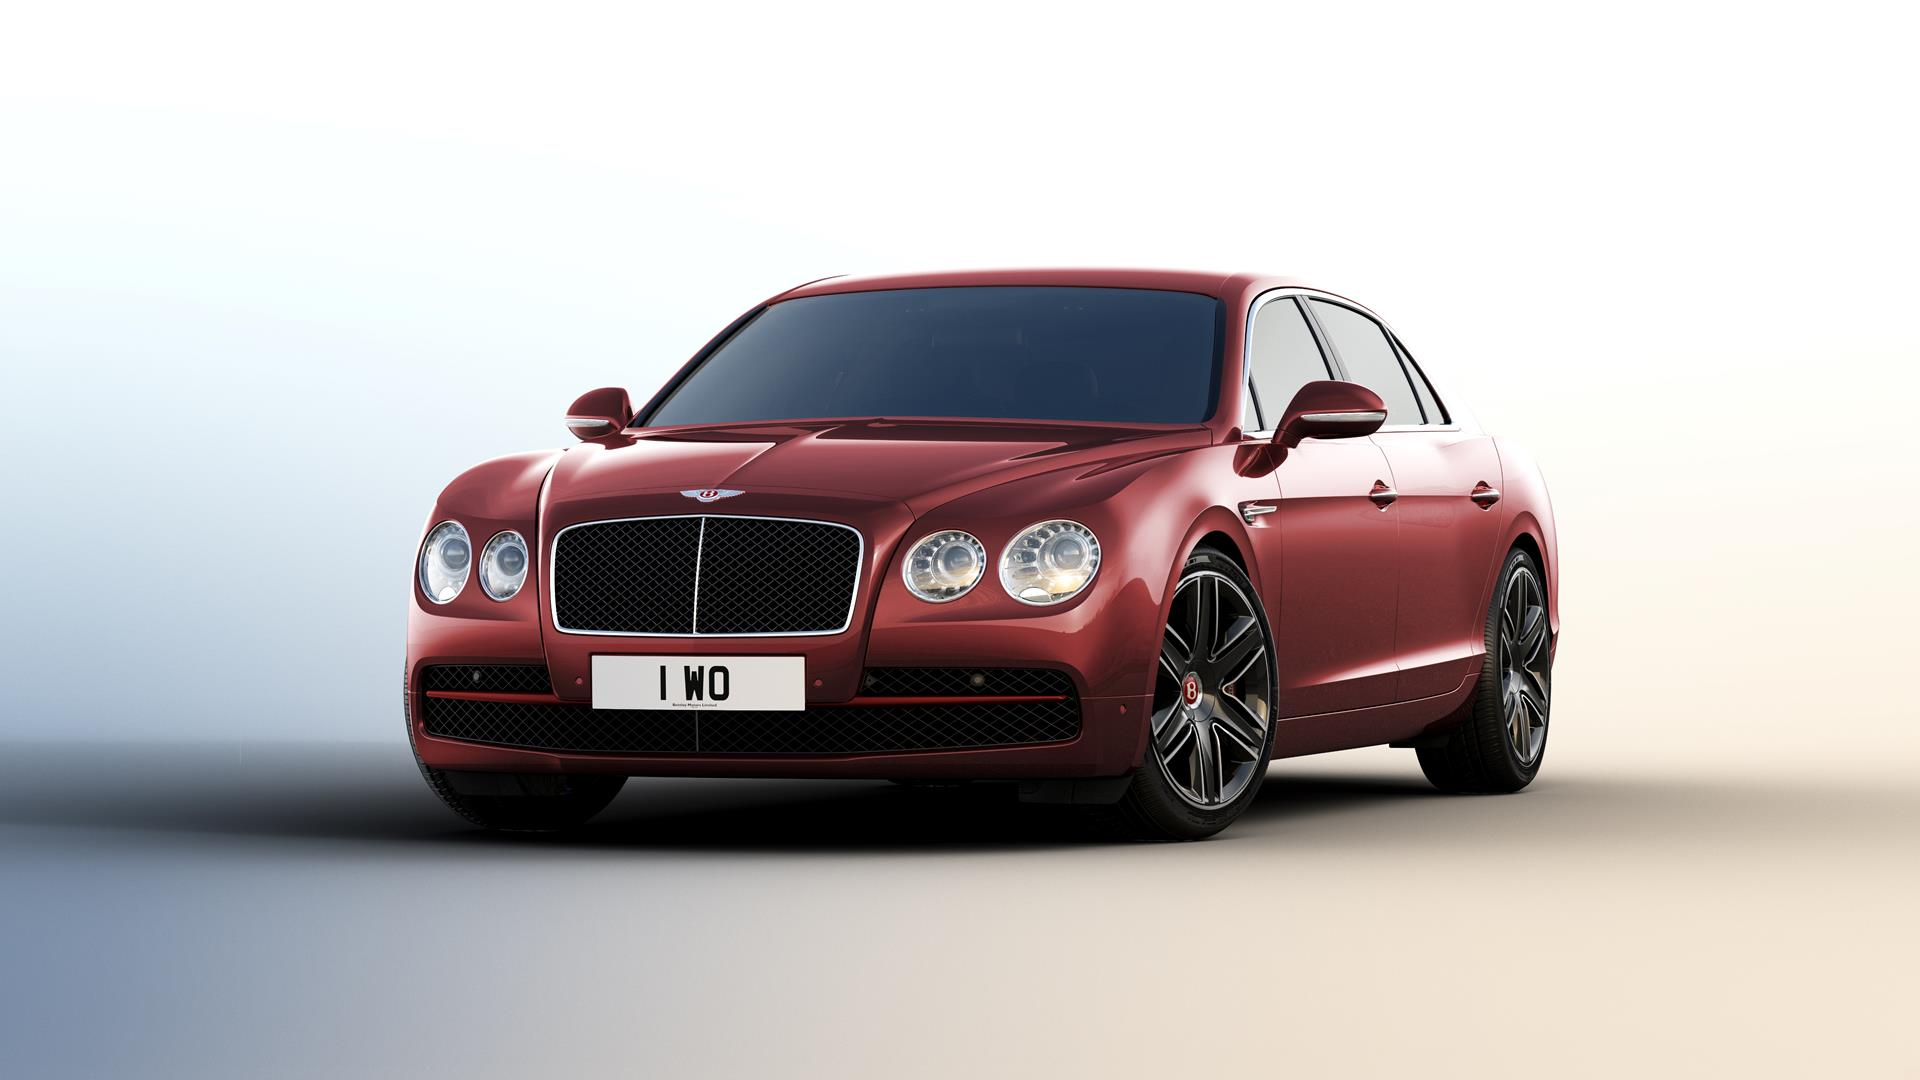 Bentley Flying Spur Beluga Specification pictures and wallpaper